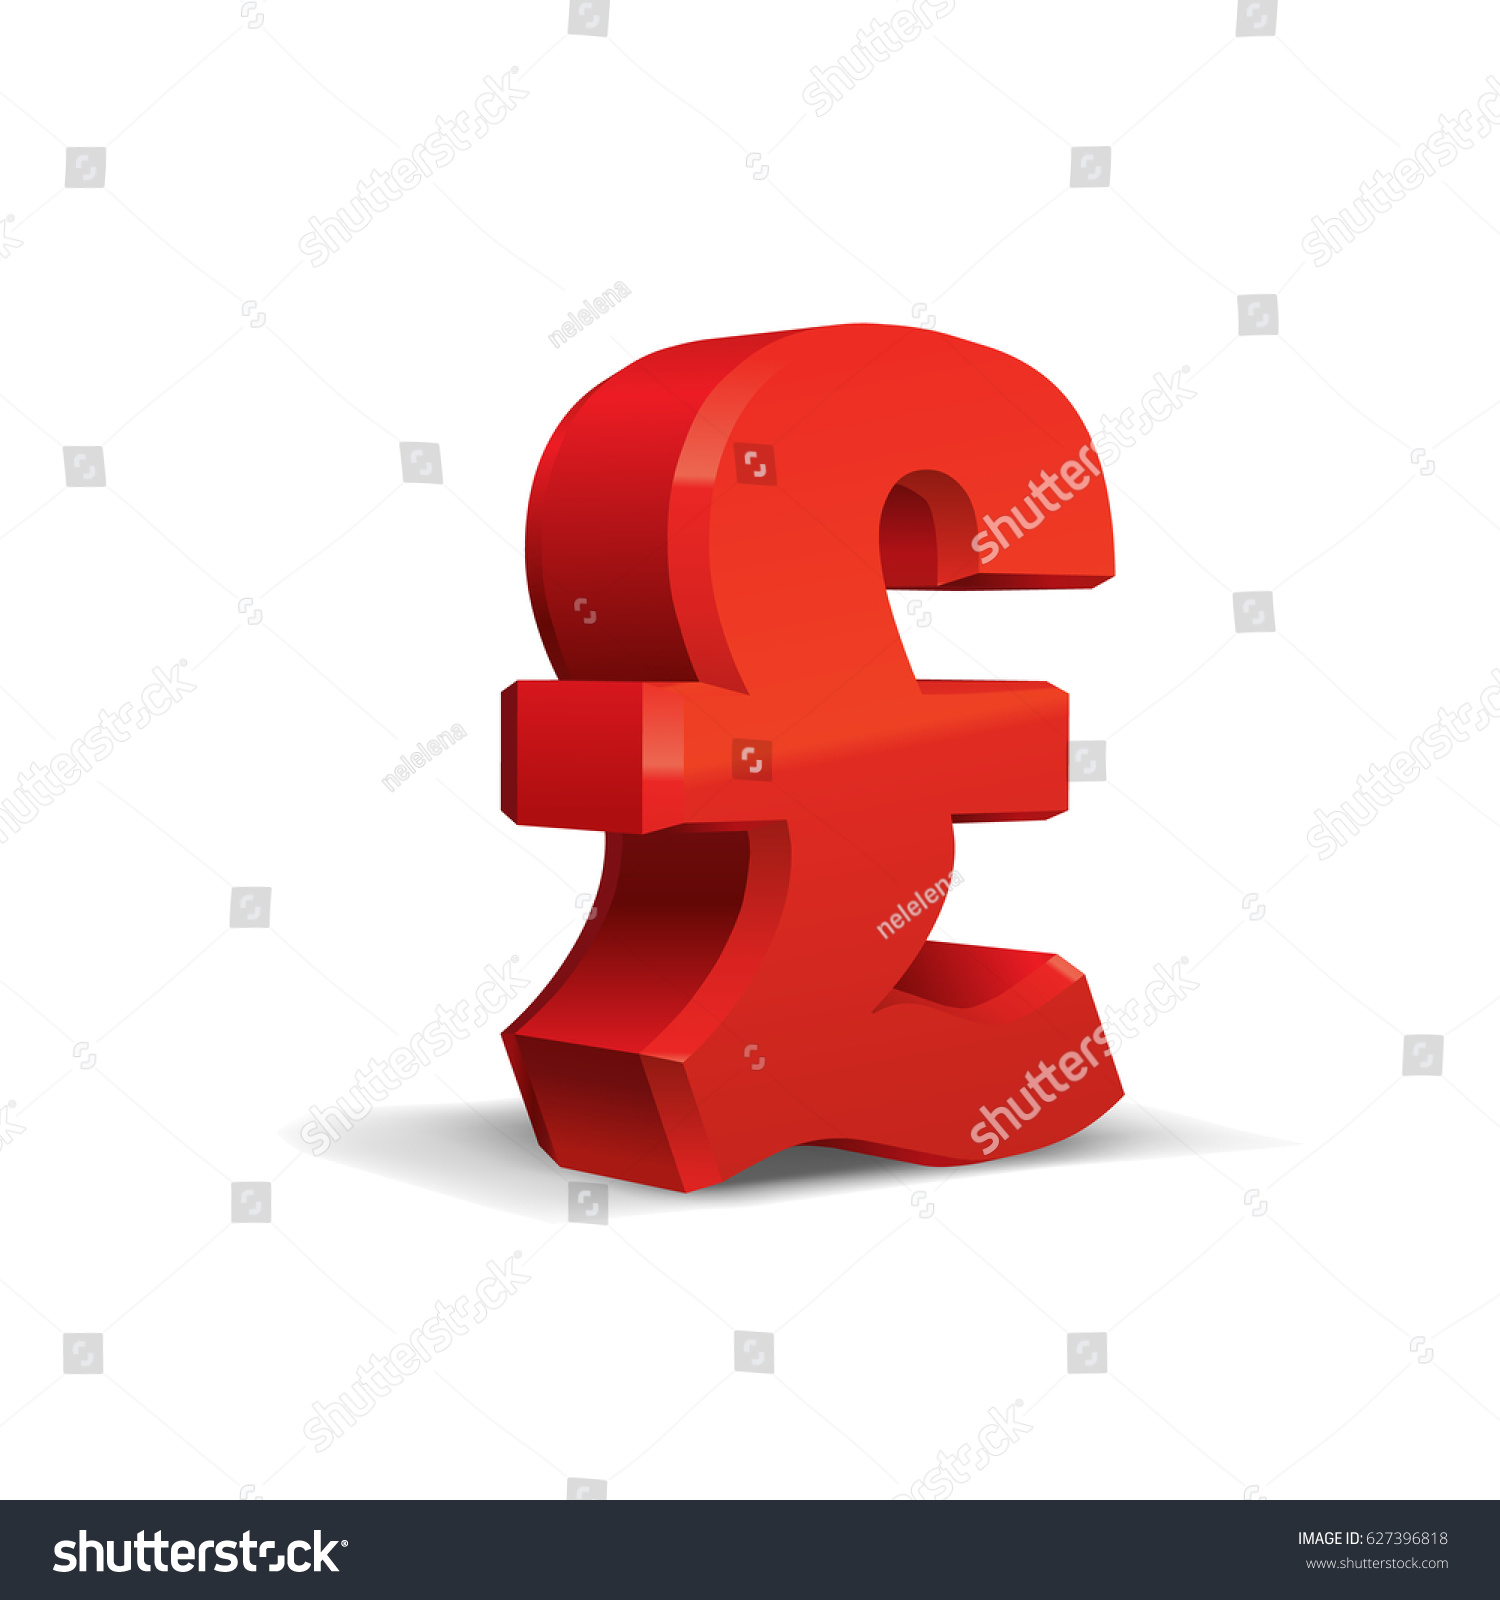 Red 3d pound sterling sign currency stock vector 627396818 red 3d pound sterling sign currency symbol vector illustration isolated on white background biocorpaavc Gallery